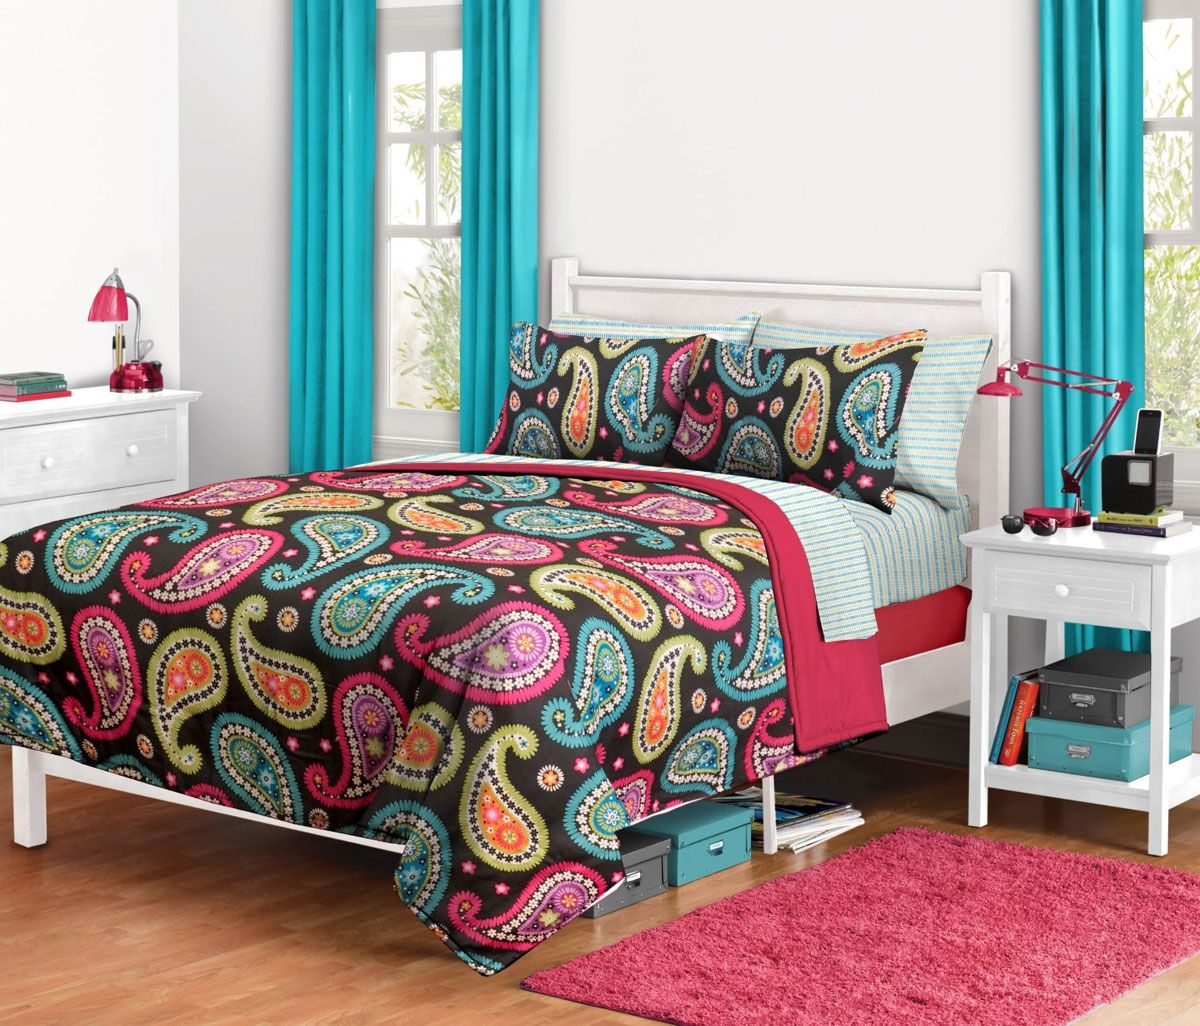 Bright Paisley Twin XL Bedding Set   6pc Floral Comforter Sheets